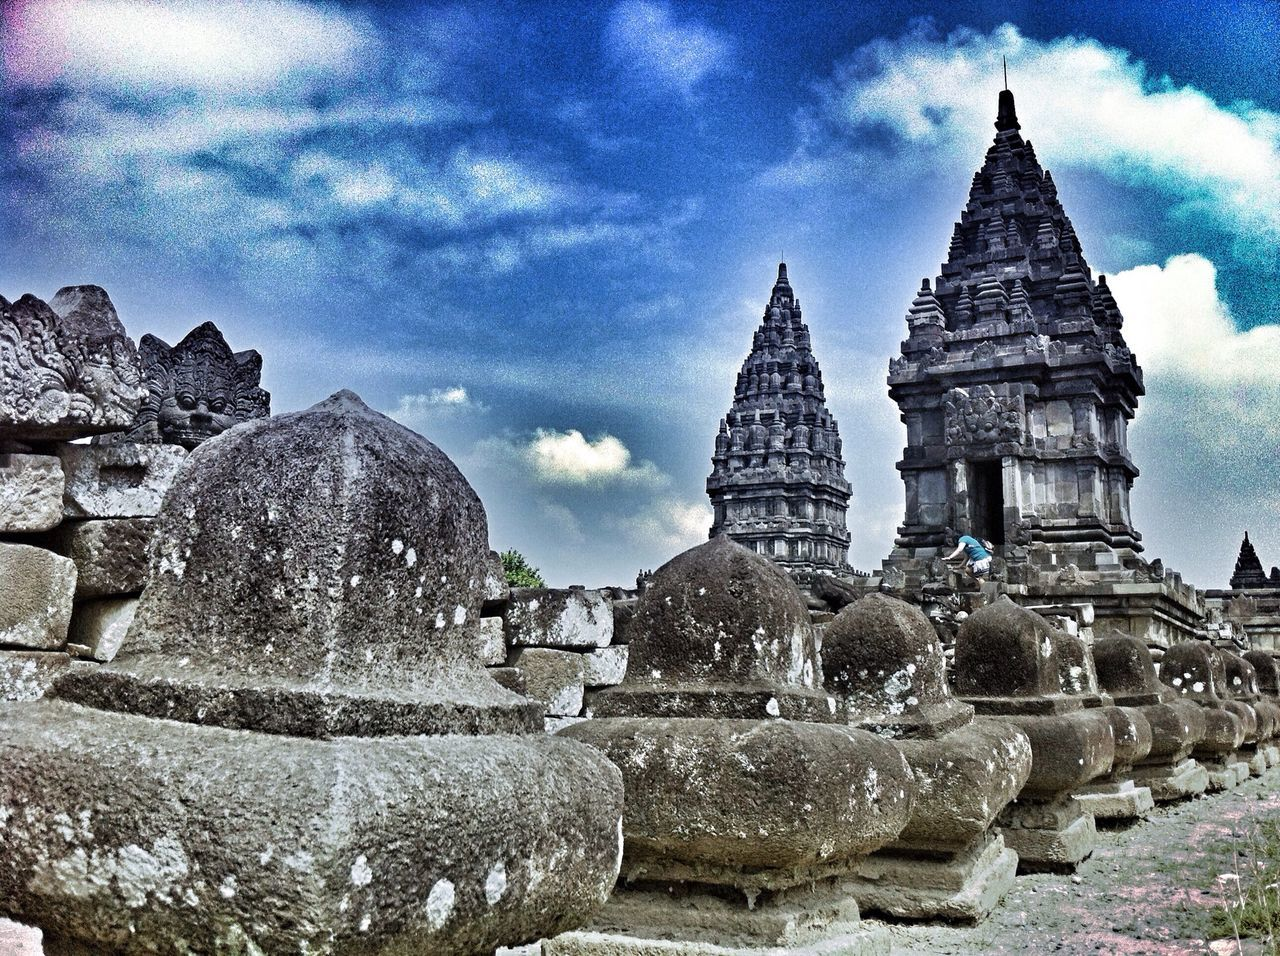 architecture, religion, history, spirituality, sky, place of worship, built structure, building exterior, travel destinations, no people, ancient, day, ancient civilization, outdoors